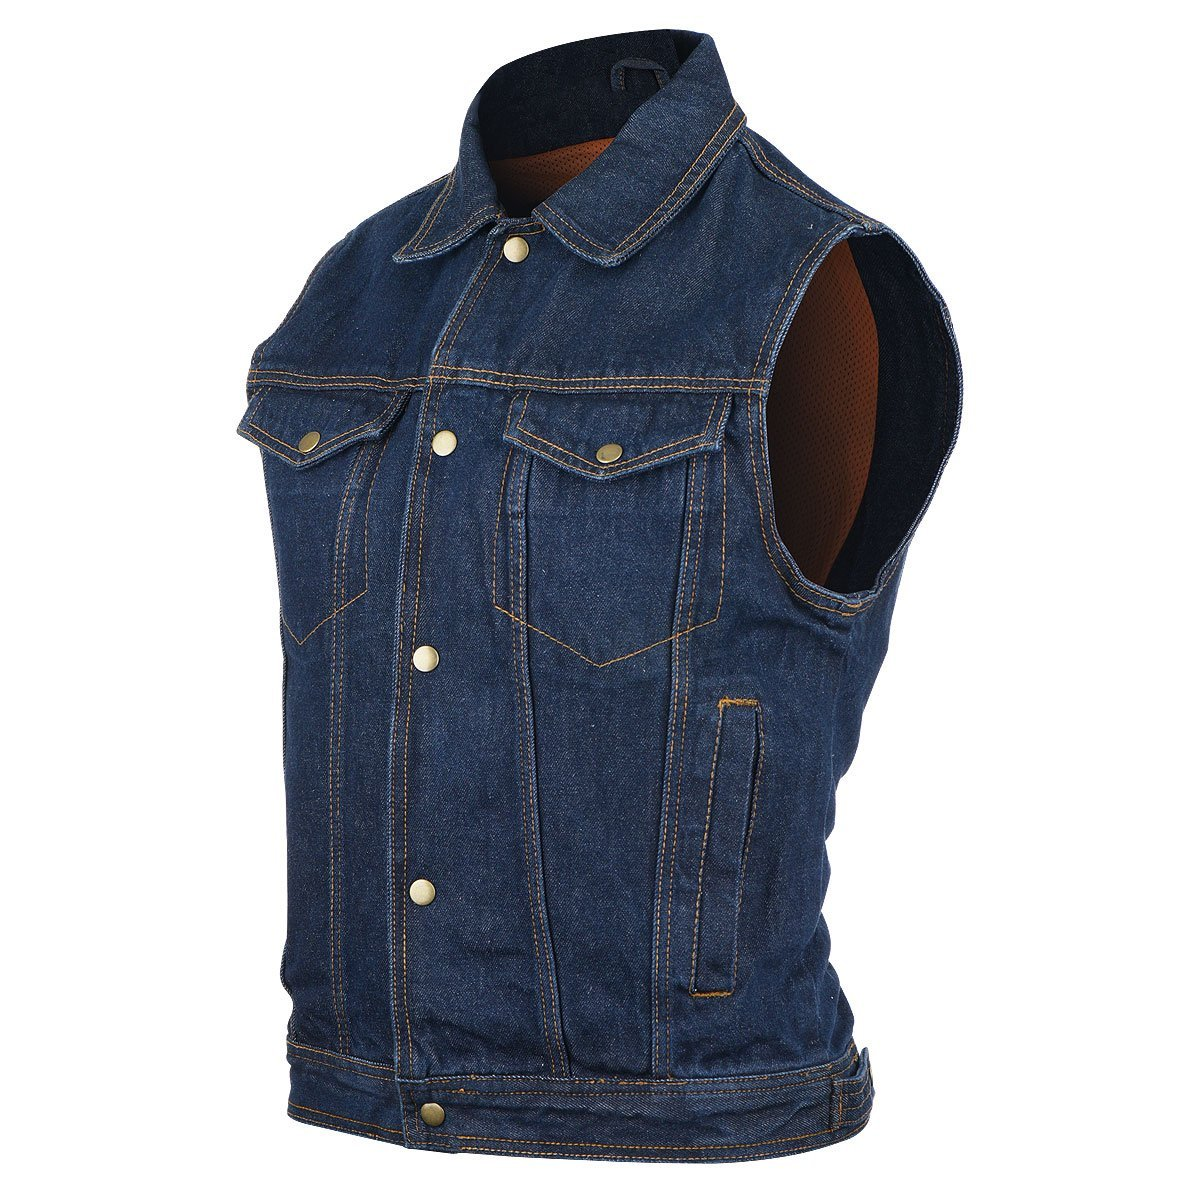 amazon.com: mens blue denim jean vest xs: sports u0026 outdoors nmltkel